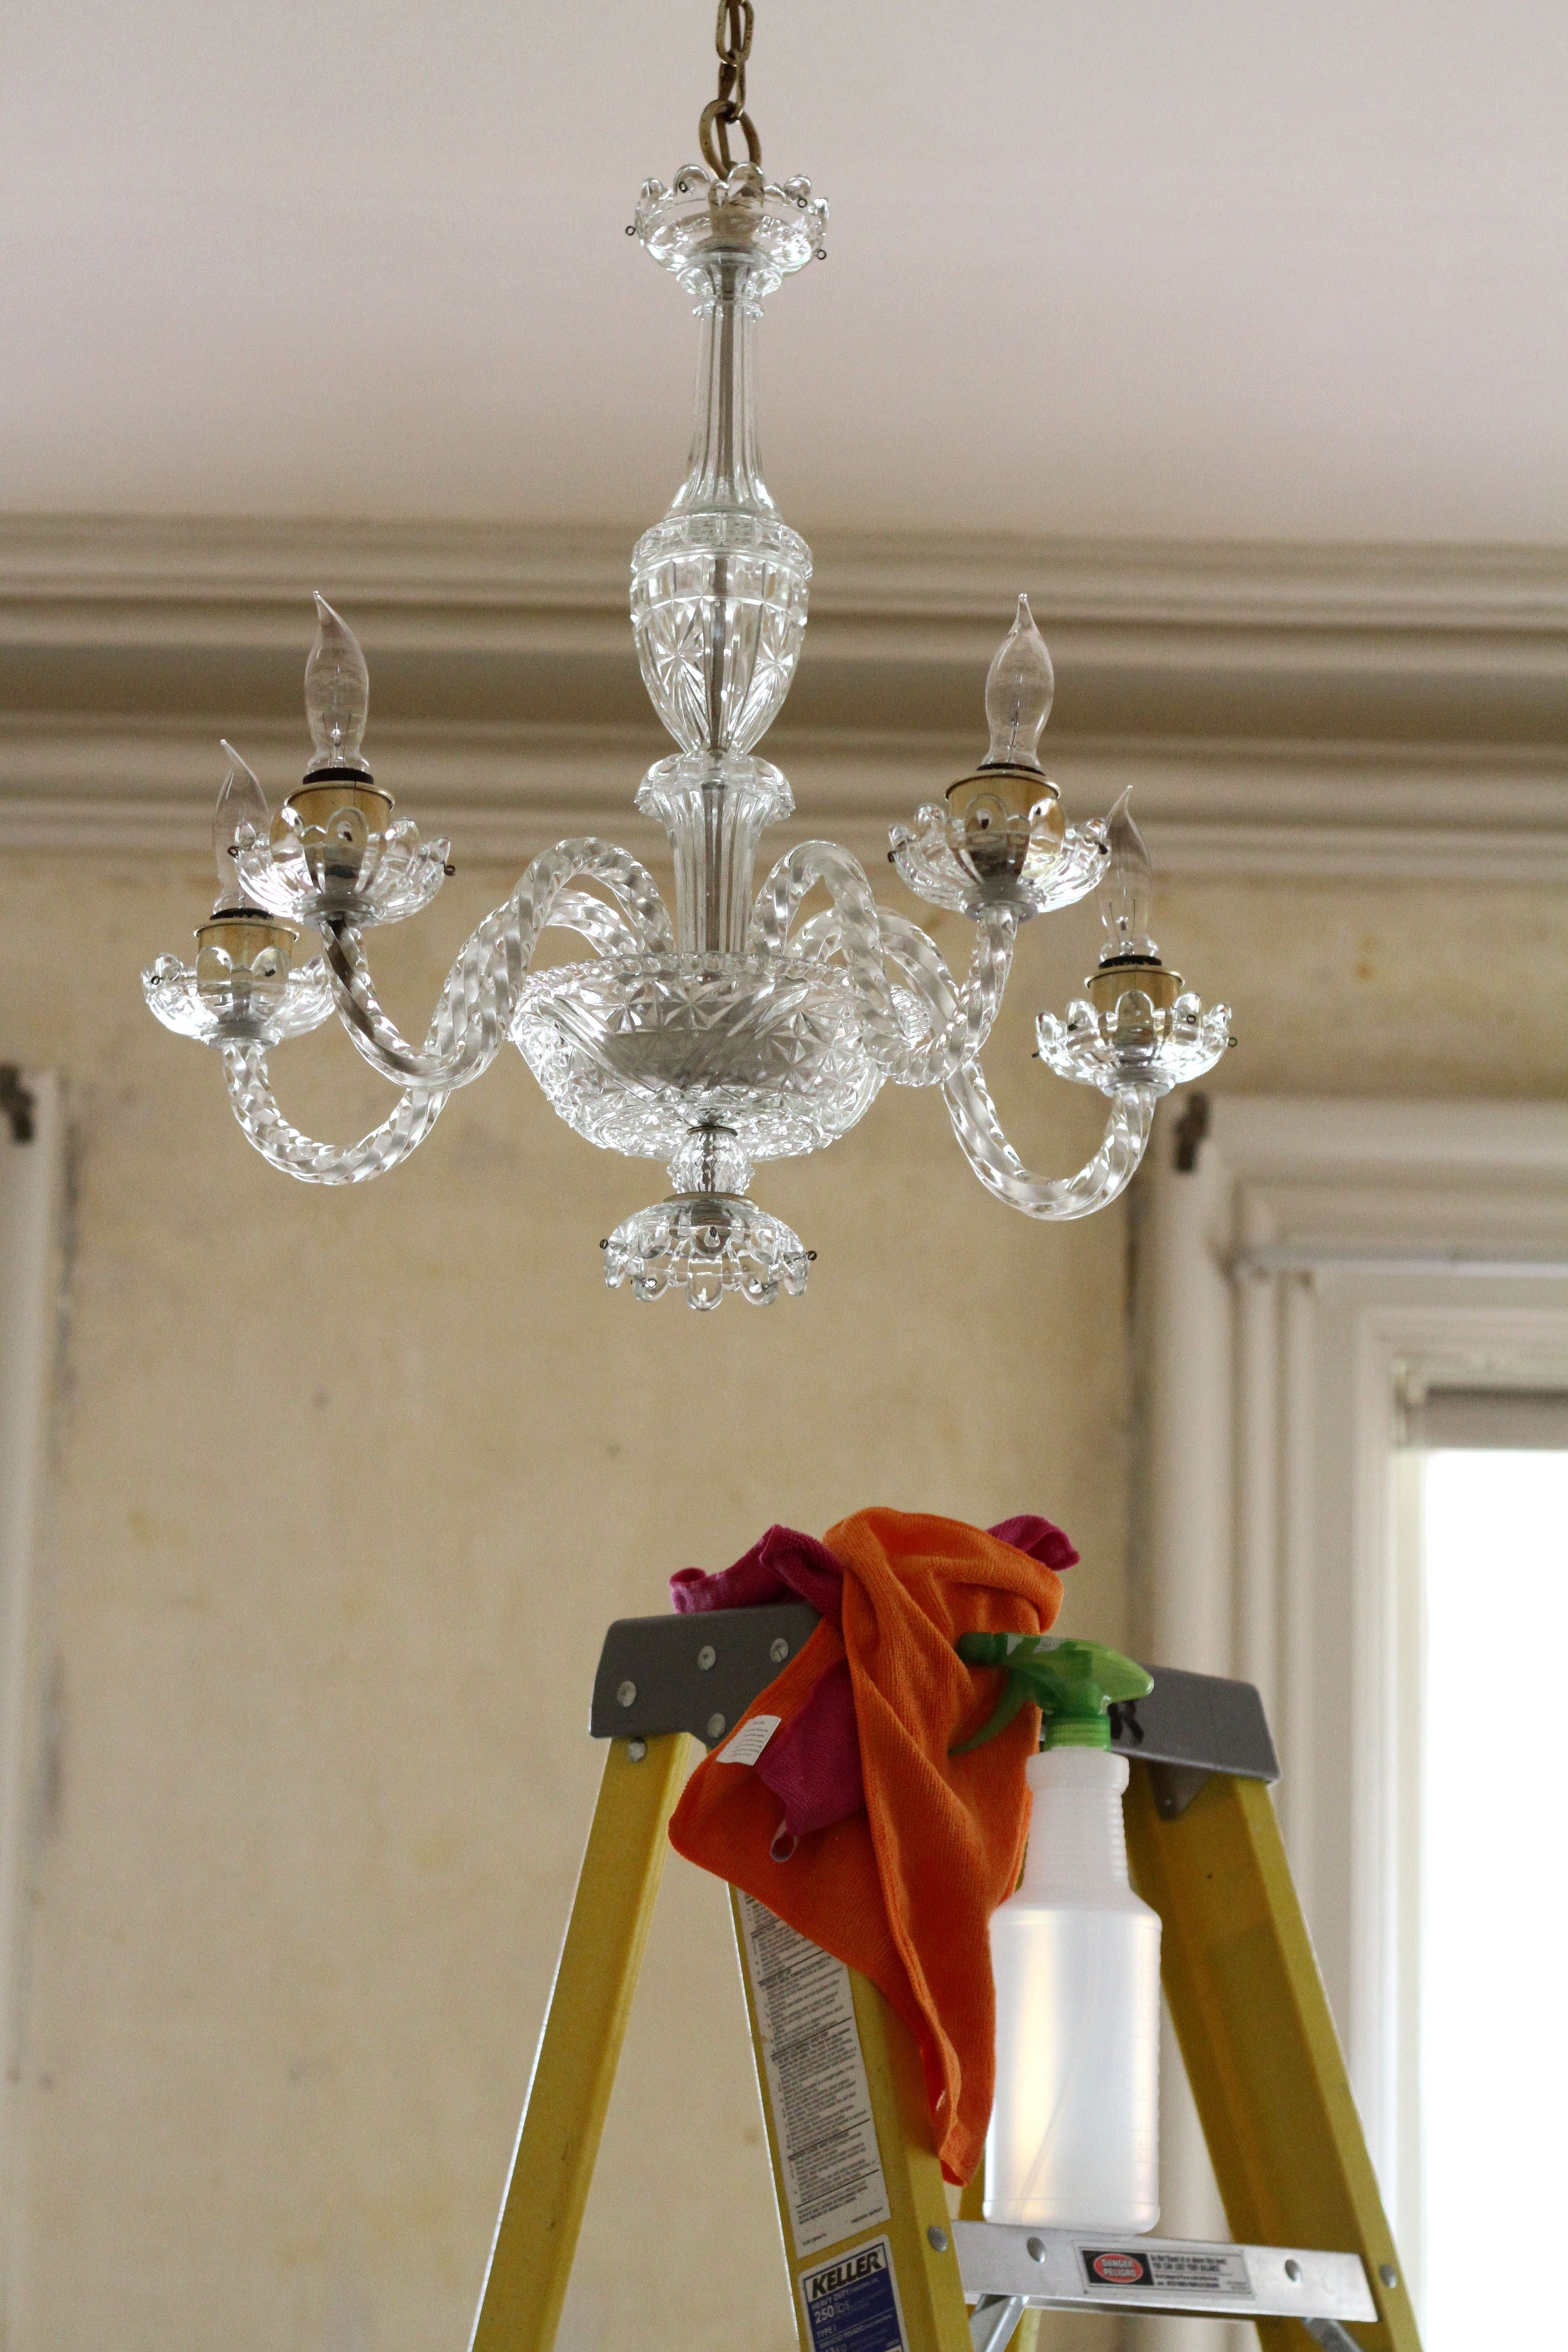 Take It From The Top: Tips U0026 Tricks For Cleaning Ceiling Fans And Fixtures